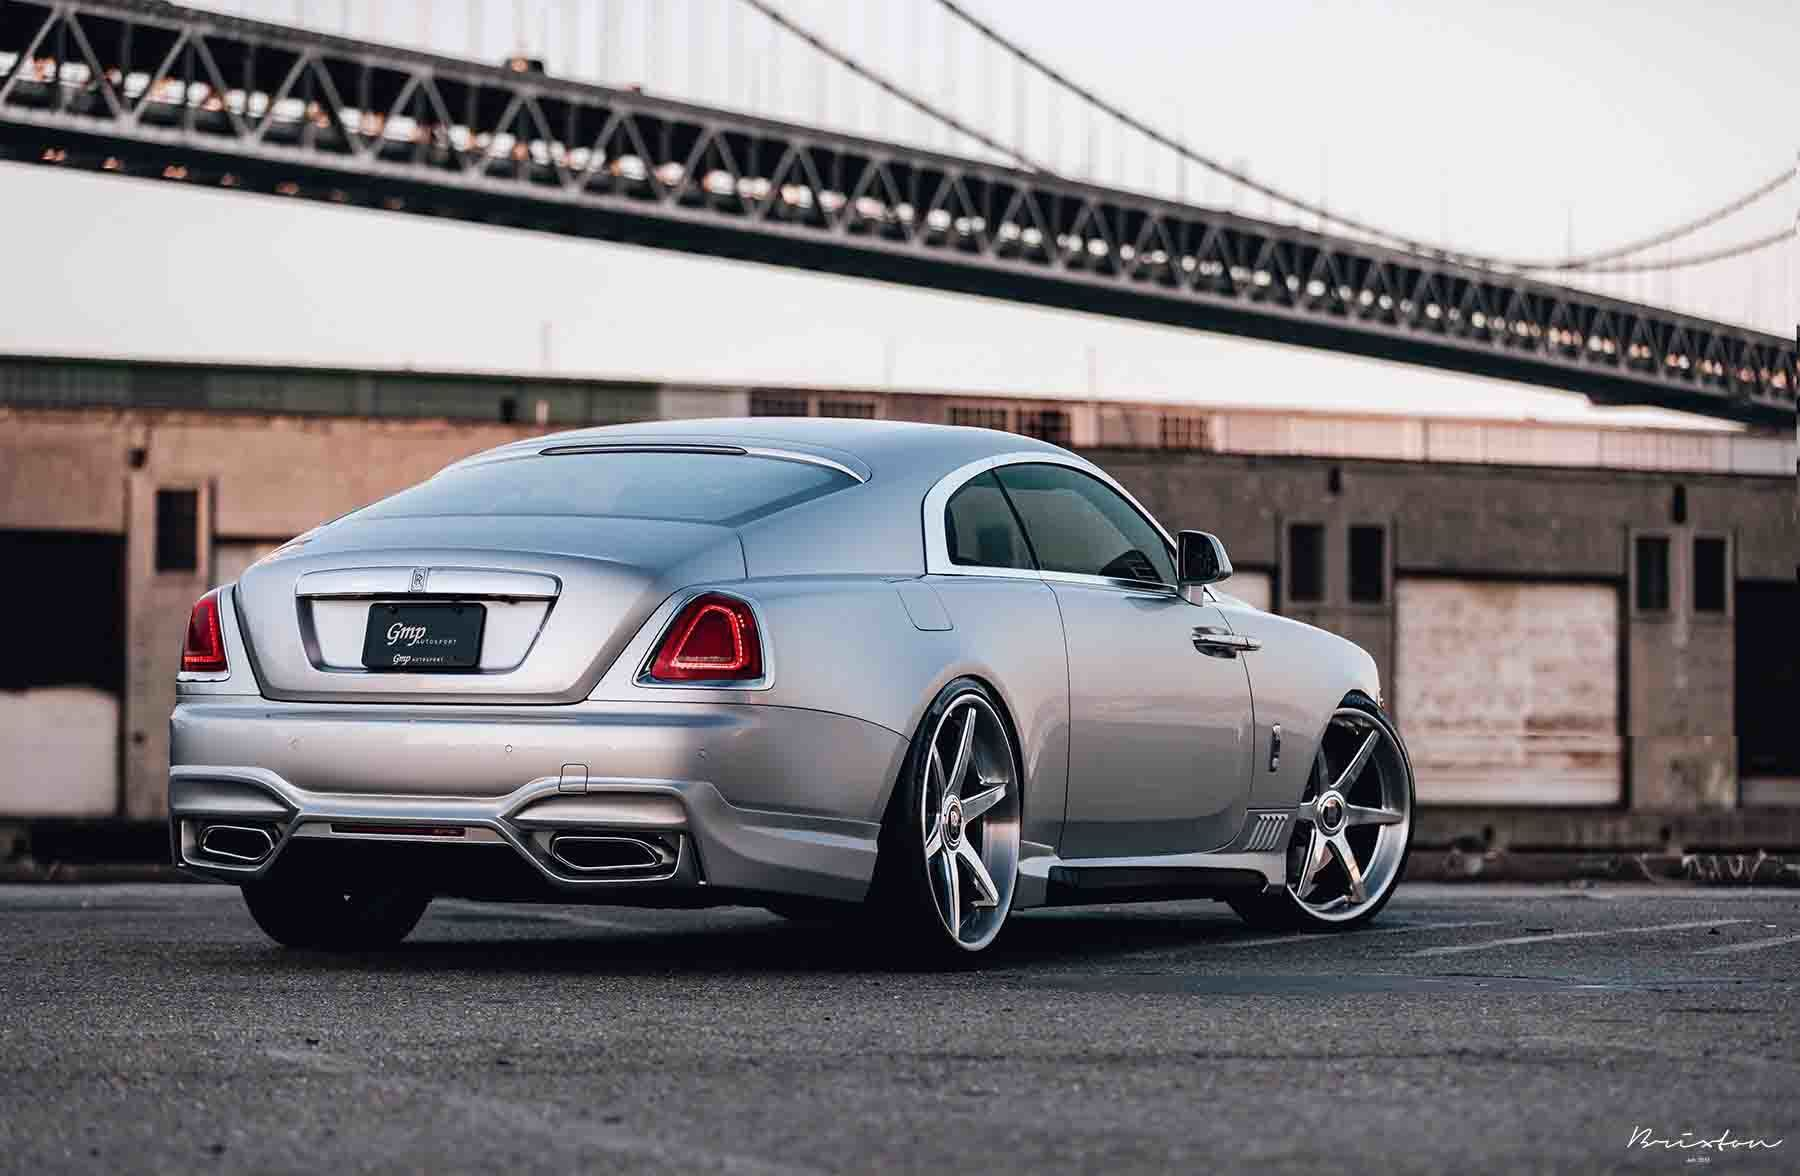 images-products-1-2886-232975174-silver-rolls-royce-wraith-brixton-forged-s60-targa-series-forged-wheels-brushed-gloss-08-1800x11.jpg